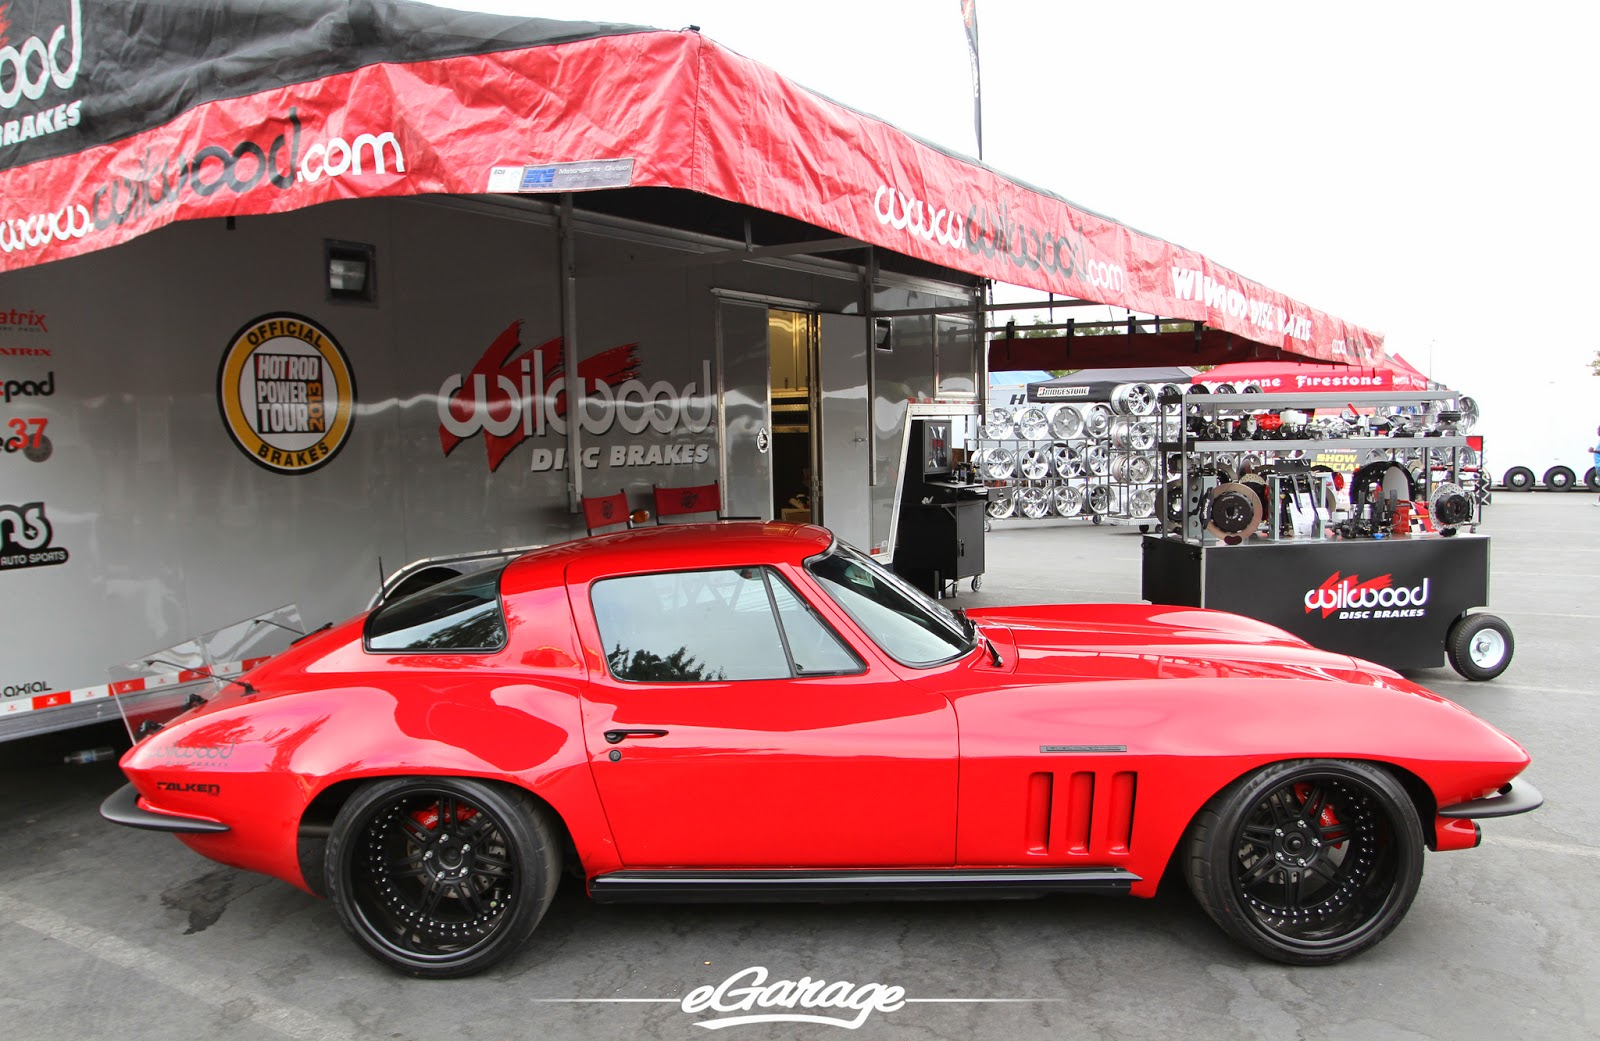 Tricked Out Showkase - A Custom Car | Sport Truck | SUV | Exotic ...